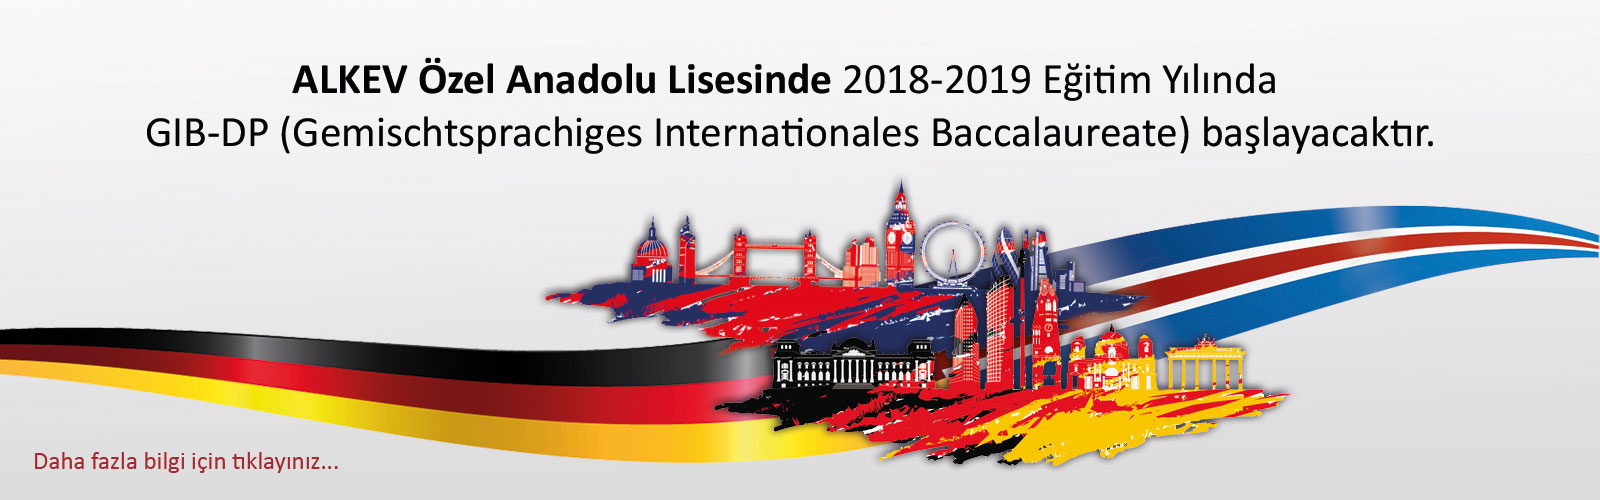 GIB (Gemischtsprachiges Internationales Baccalaureate) Diploma Programı